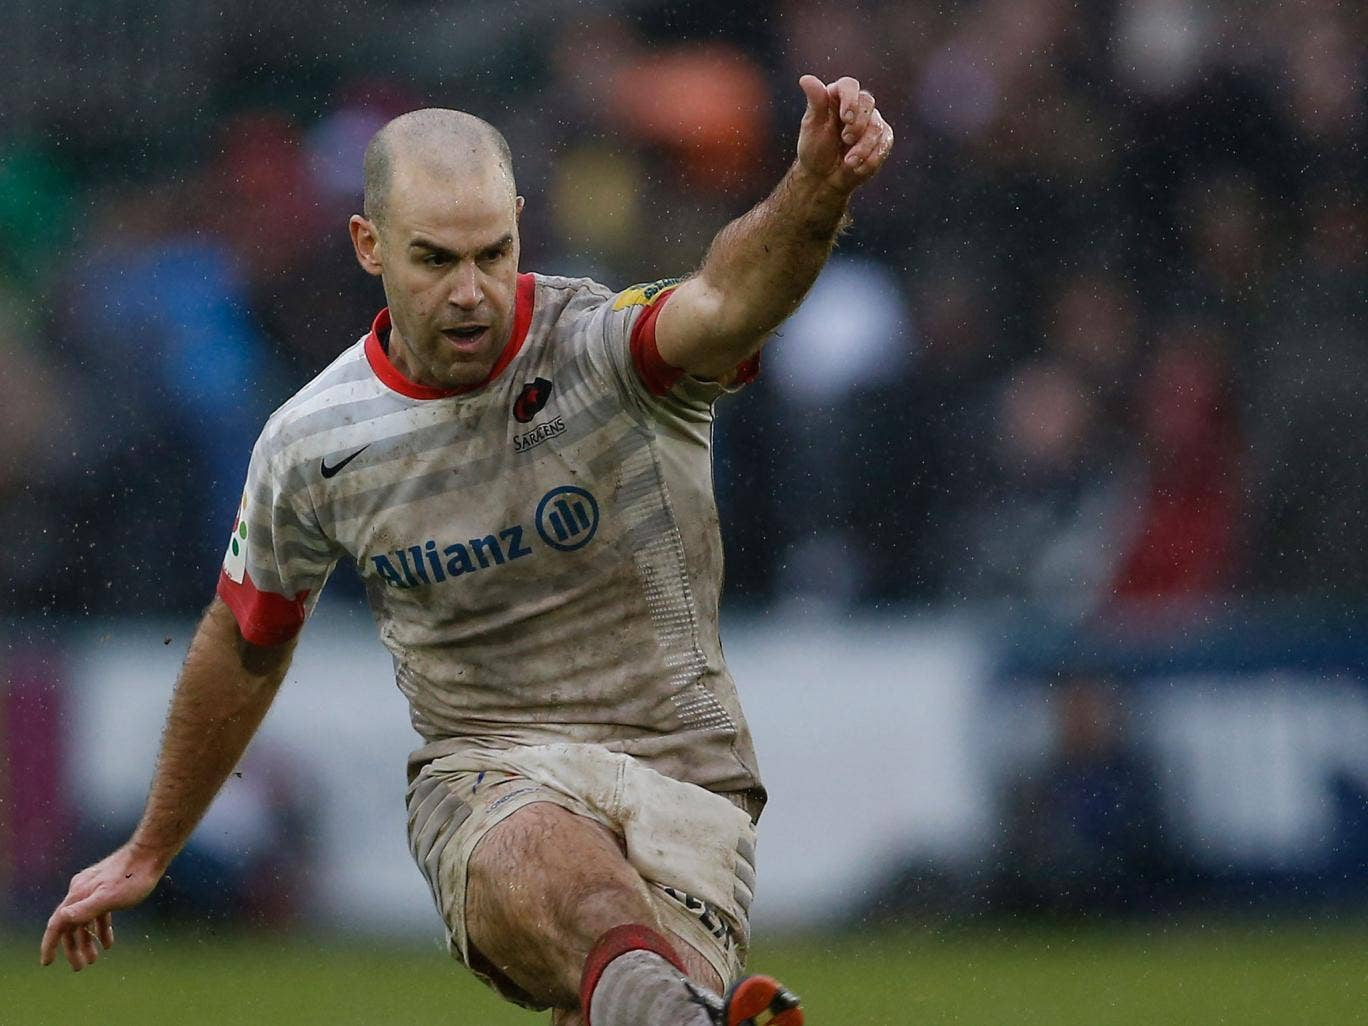 In the swing: Charlie Hodgson of Sarries kicks on his way to 17 points